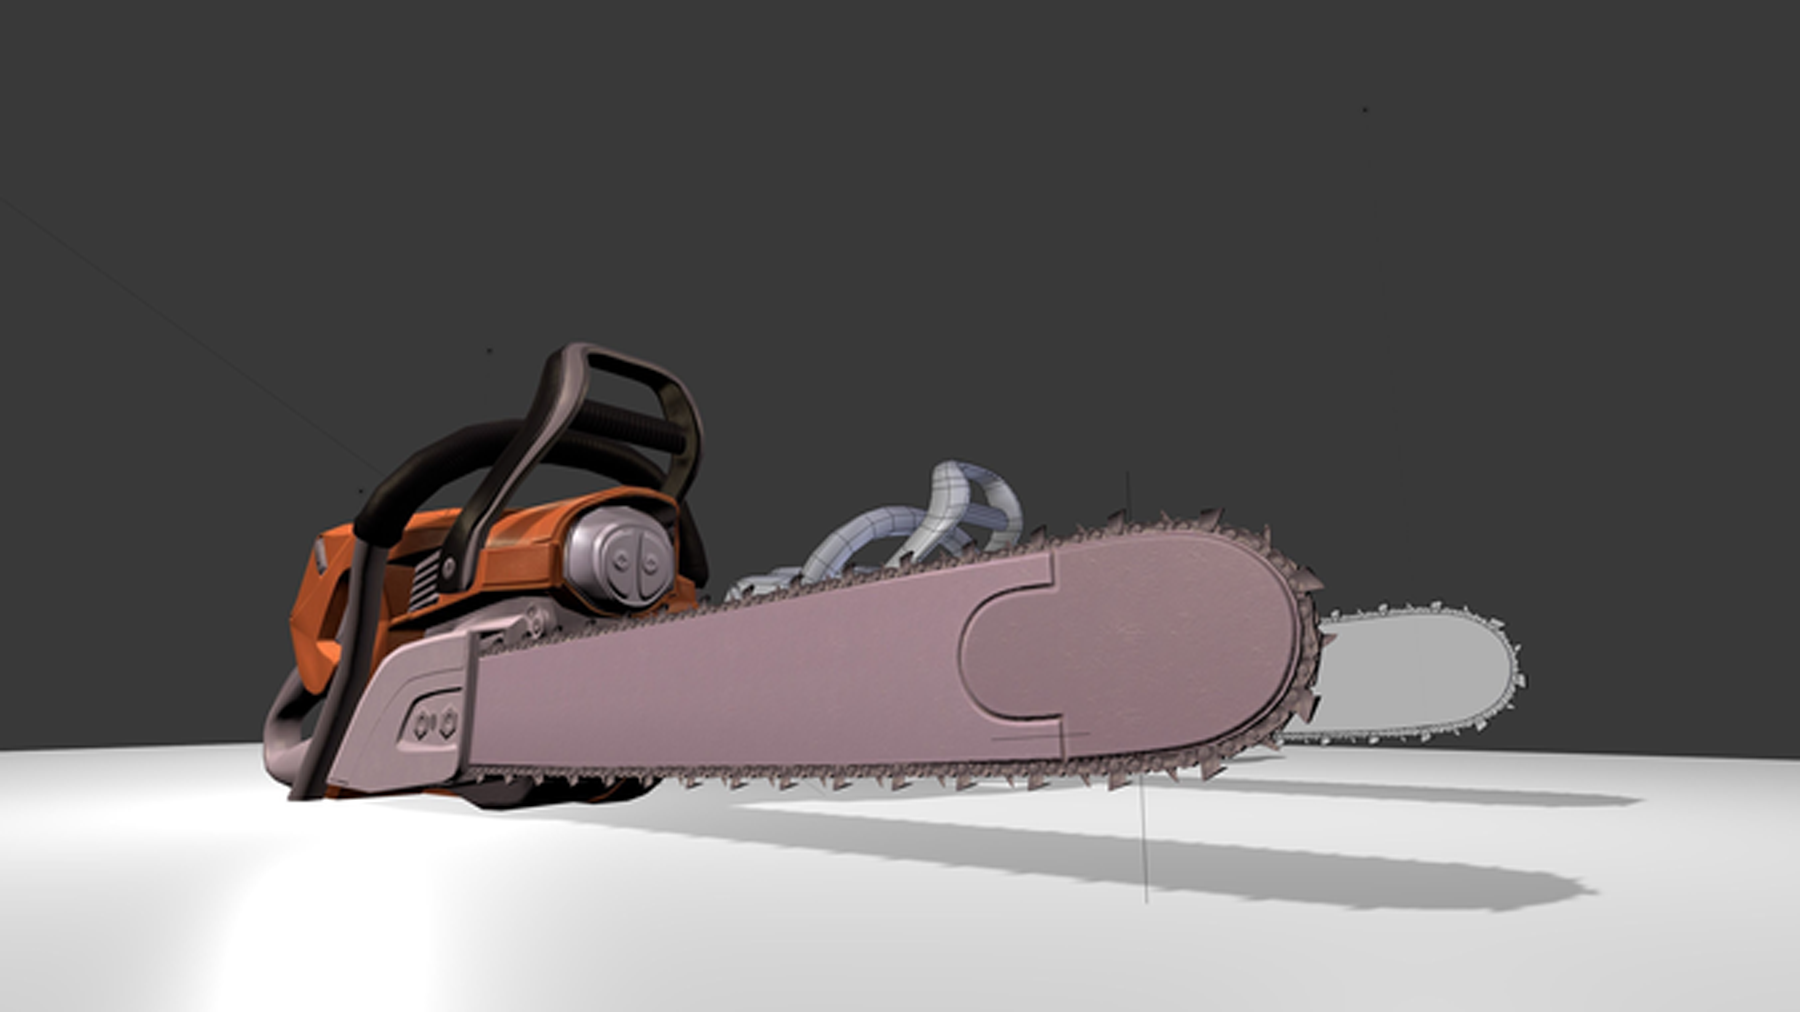 chainsaw-animated-2